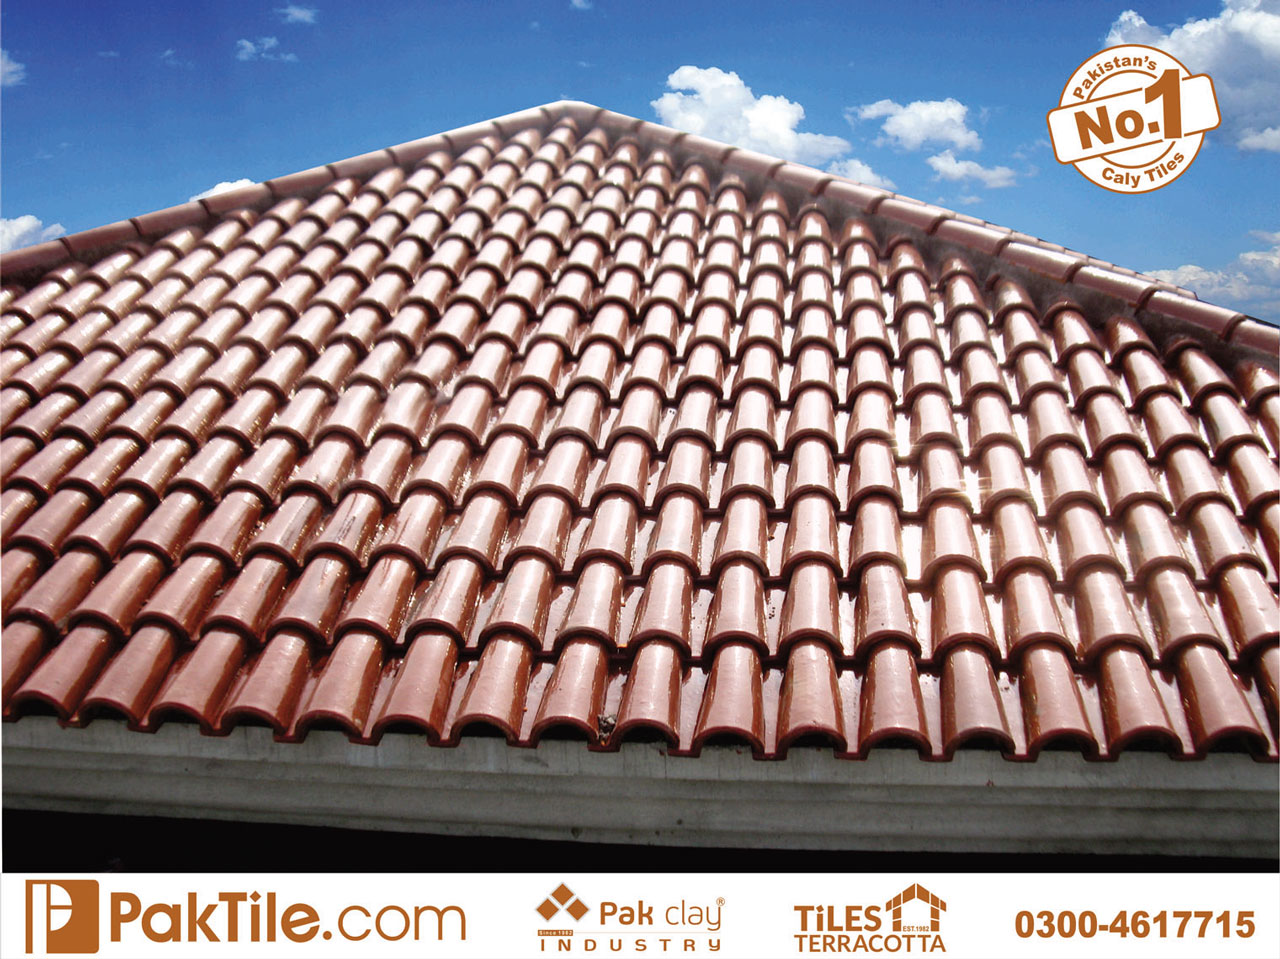 Terracotta Tiles Pakistan Red Bricks Wall Floor Clay